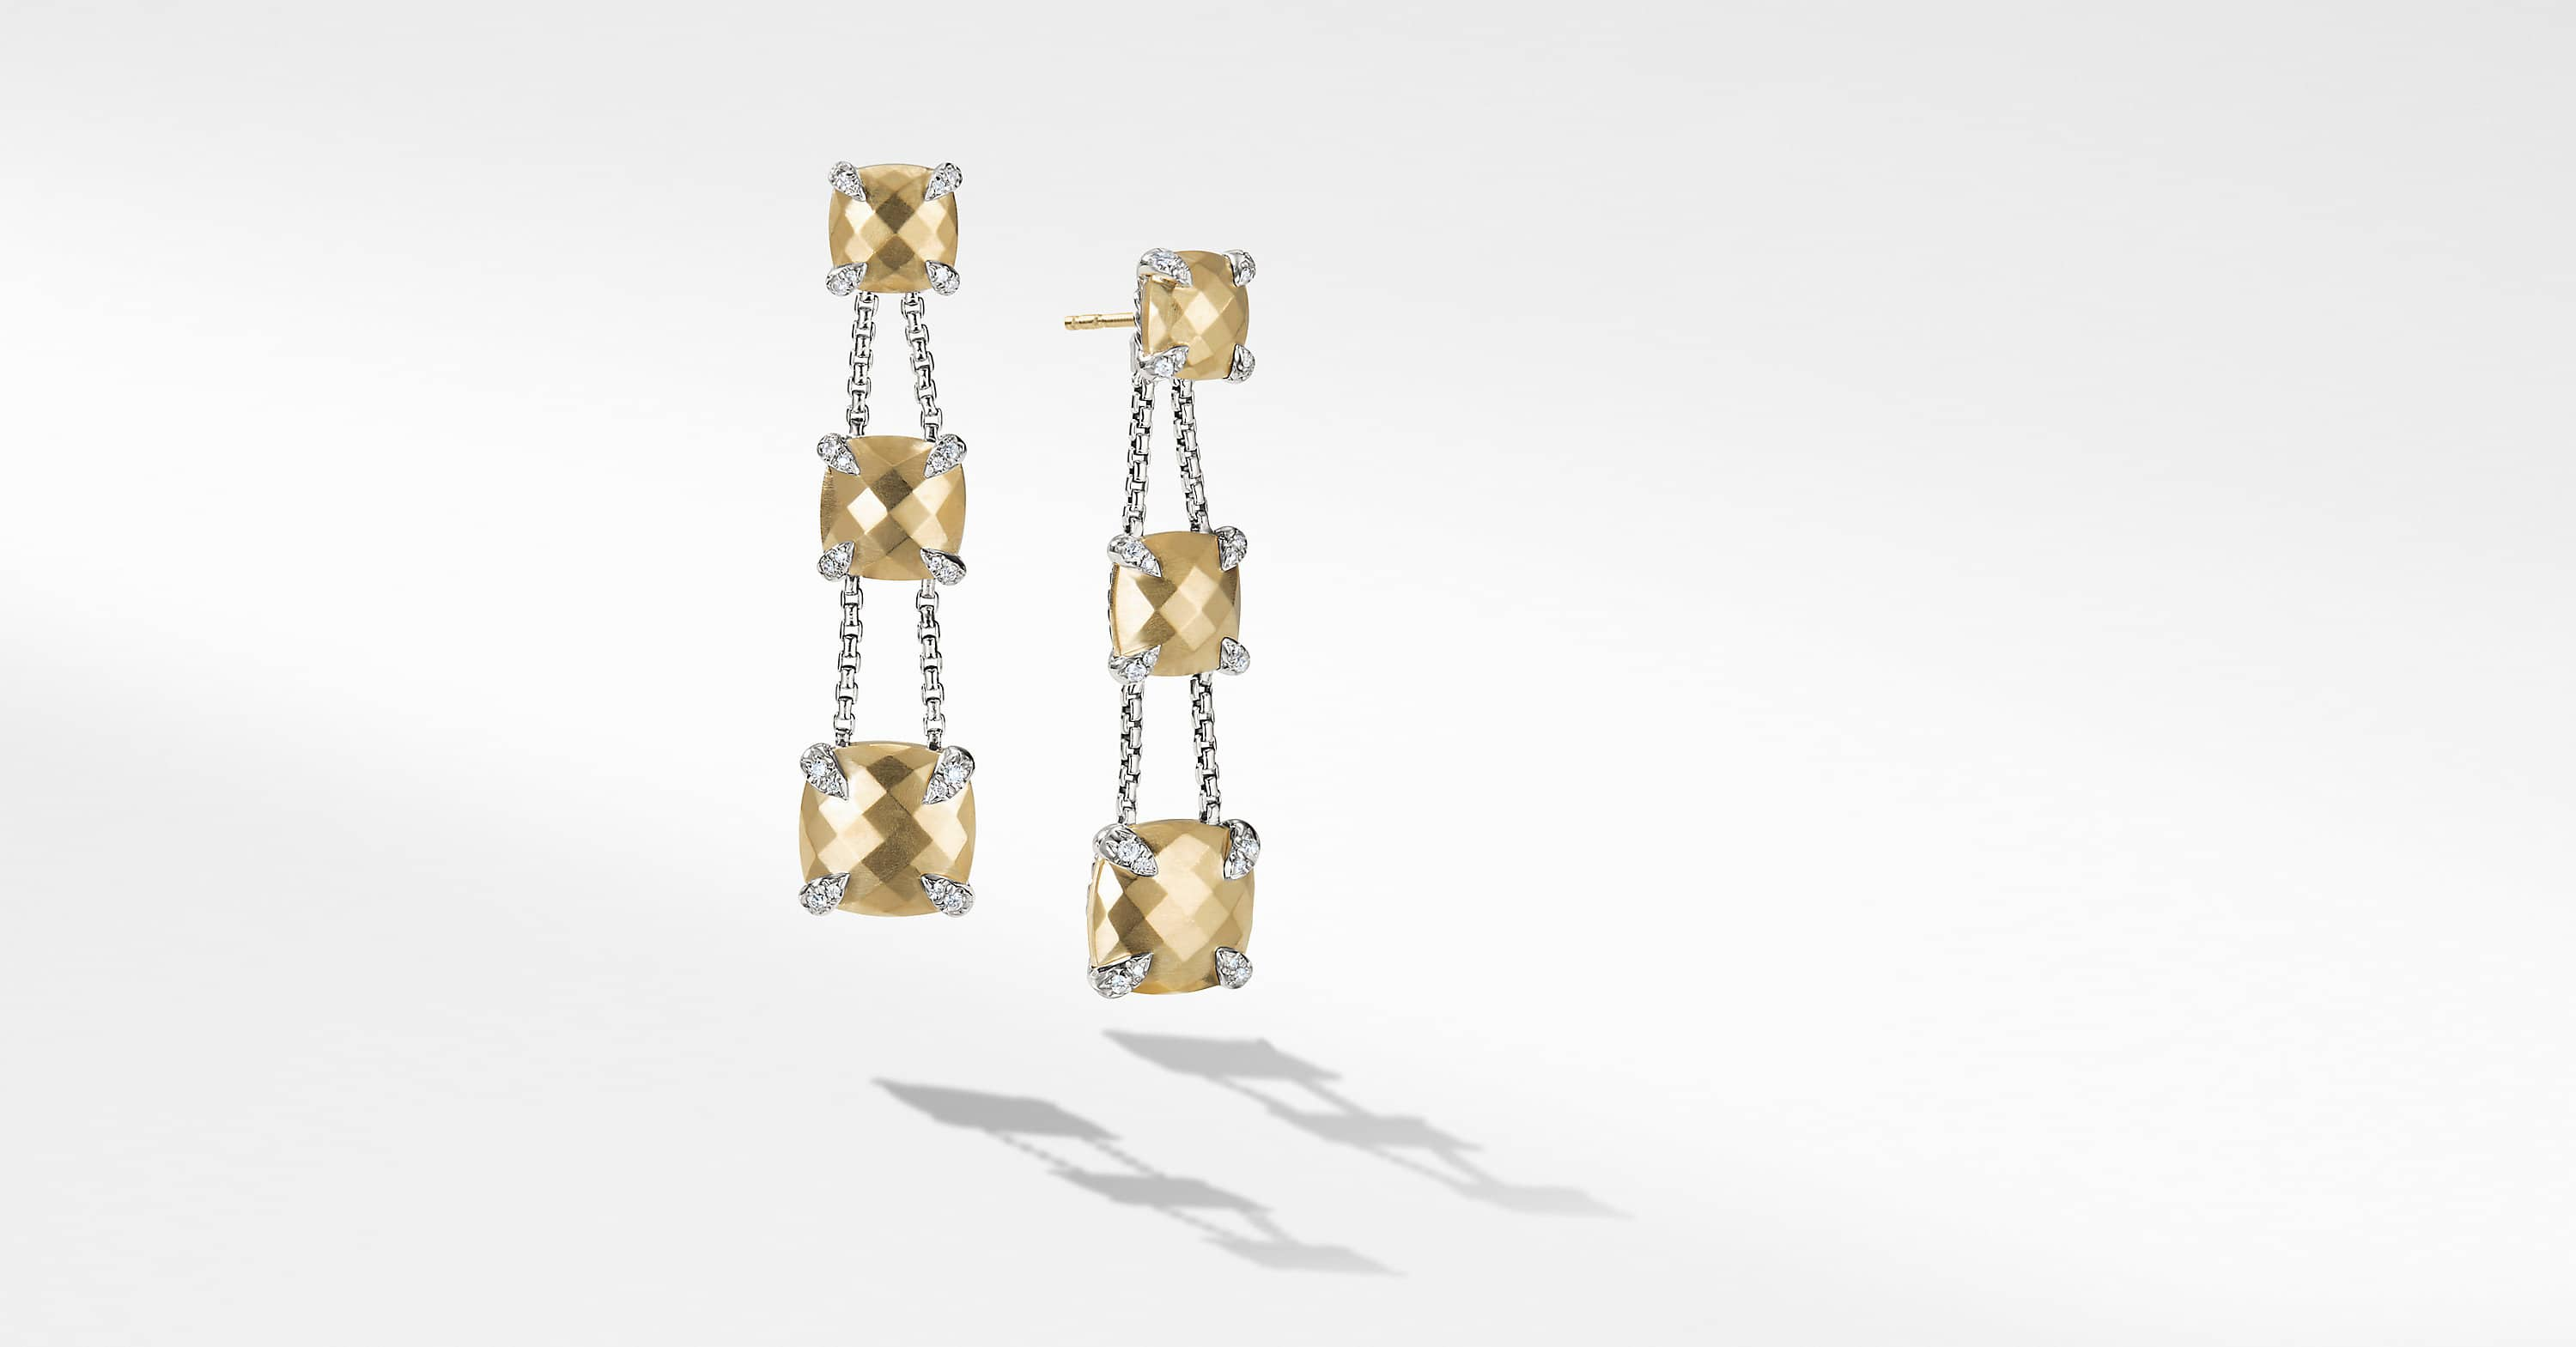 Chatelaine Linear Chain Earrings with 18K Gold and Diamonds